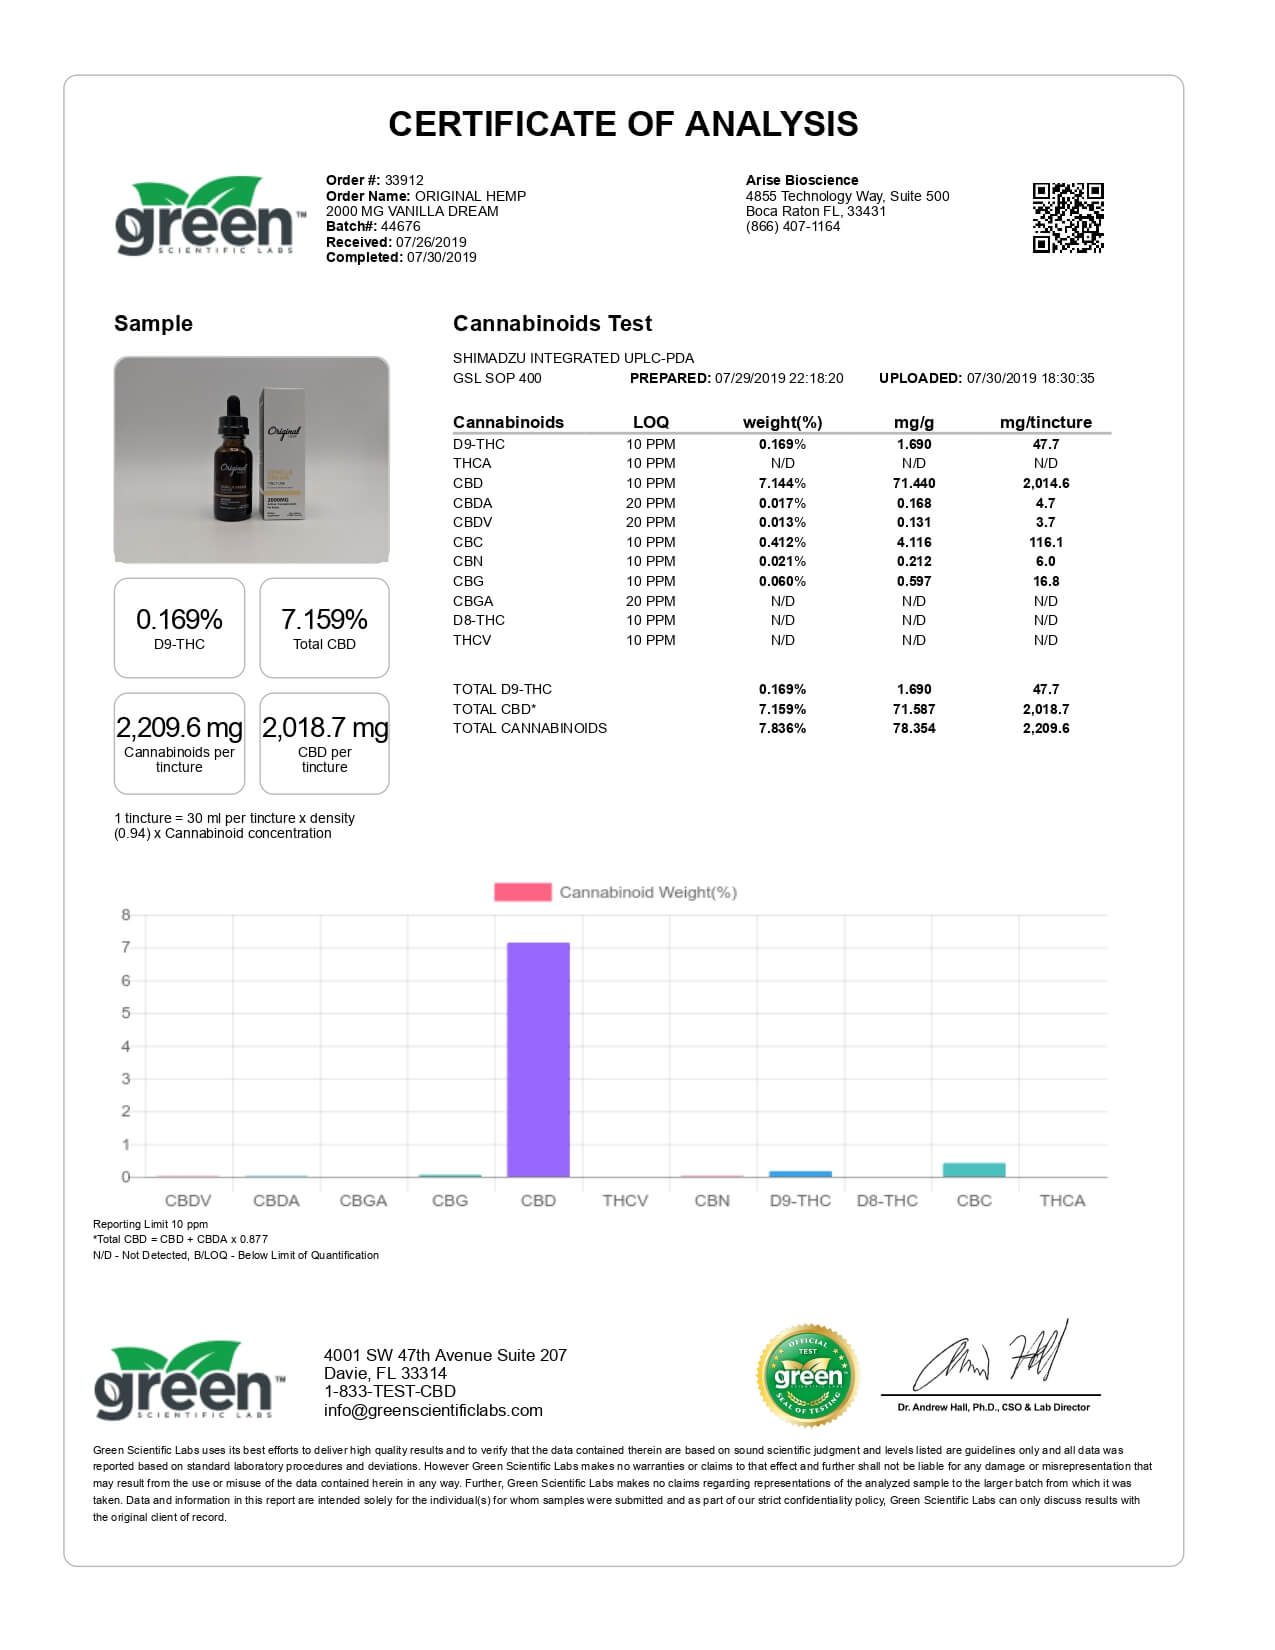 Original Hemp CBD Tincture Vanilla Dream 2000mg Lab Report